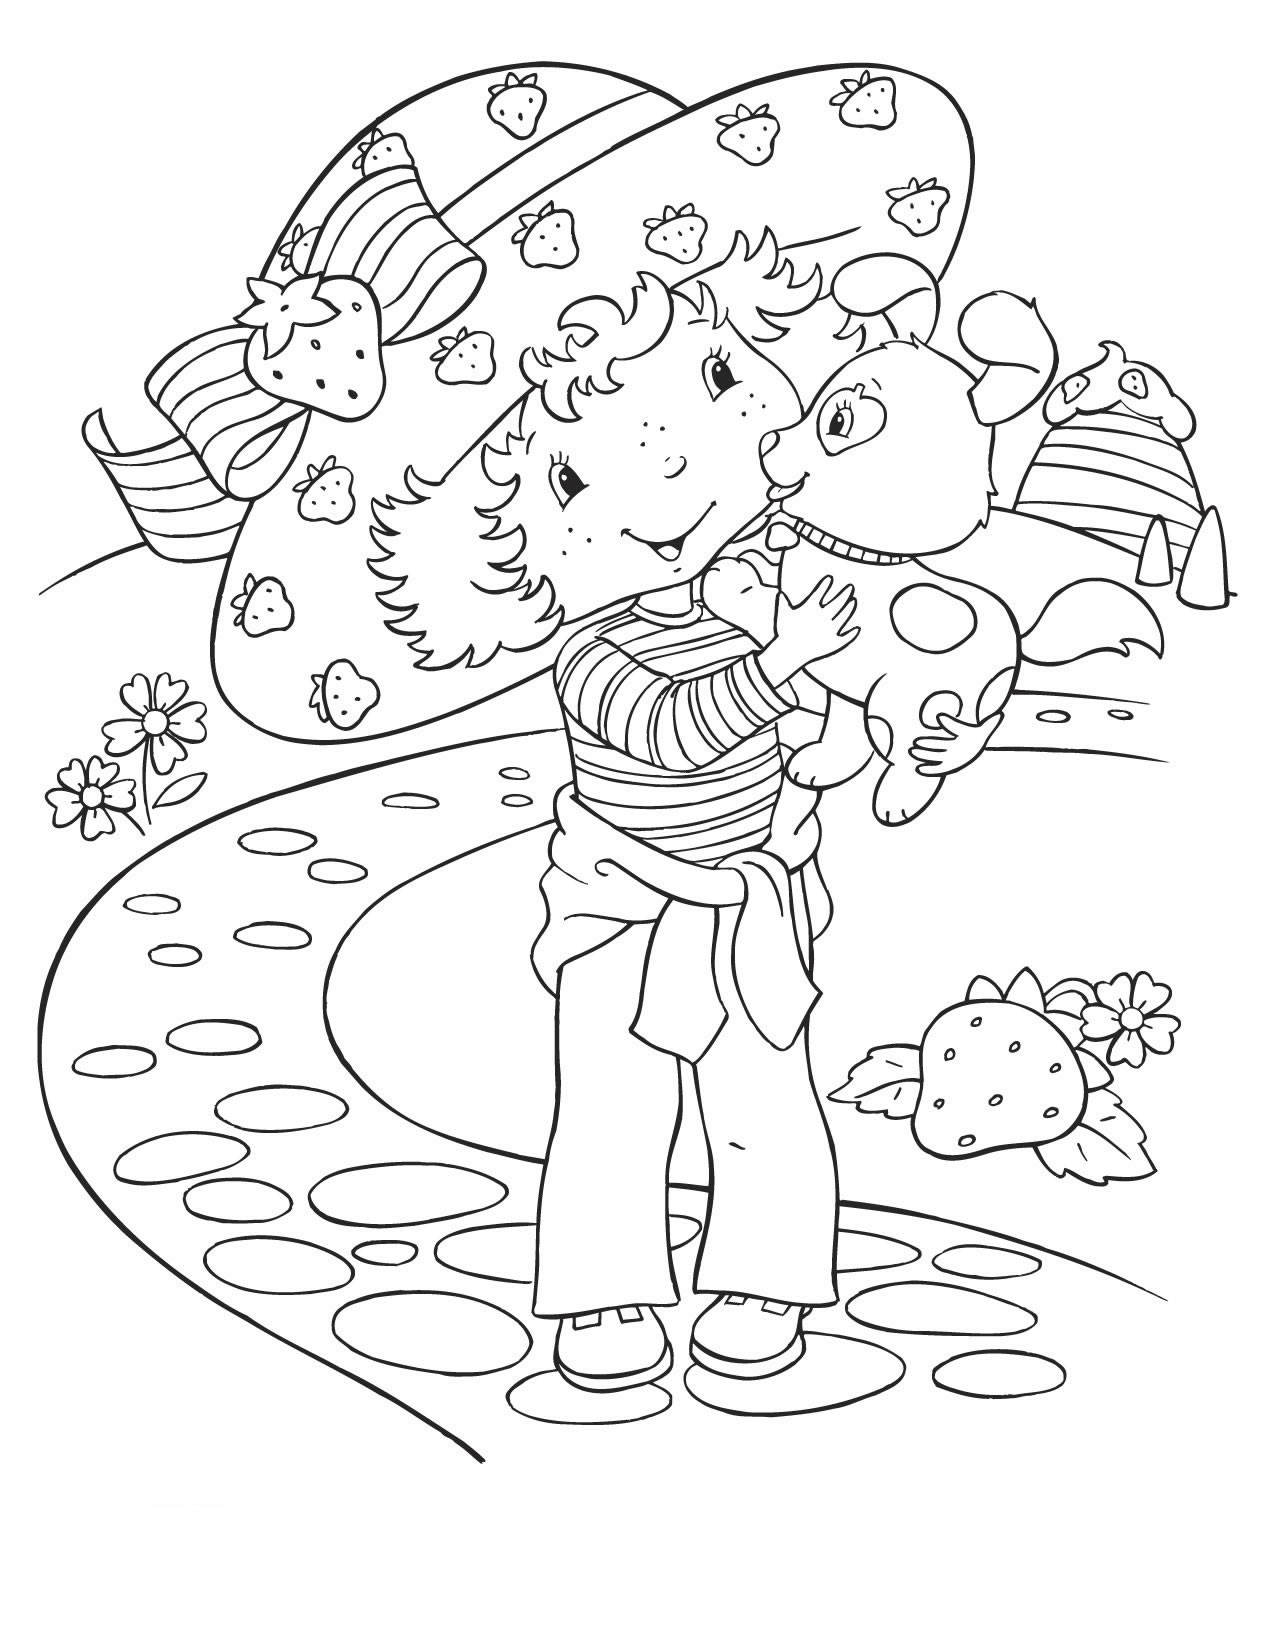 strawberry shortcake coloring games strawberry shortcake and friends coloring pages games shortcake strawberry coloring games